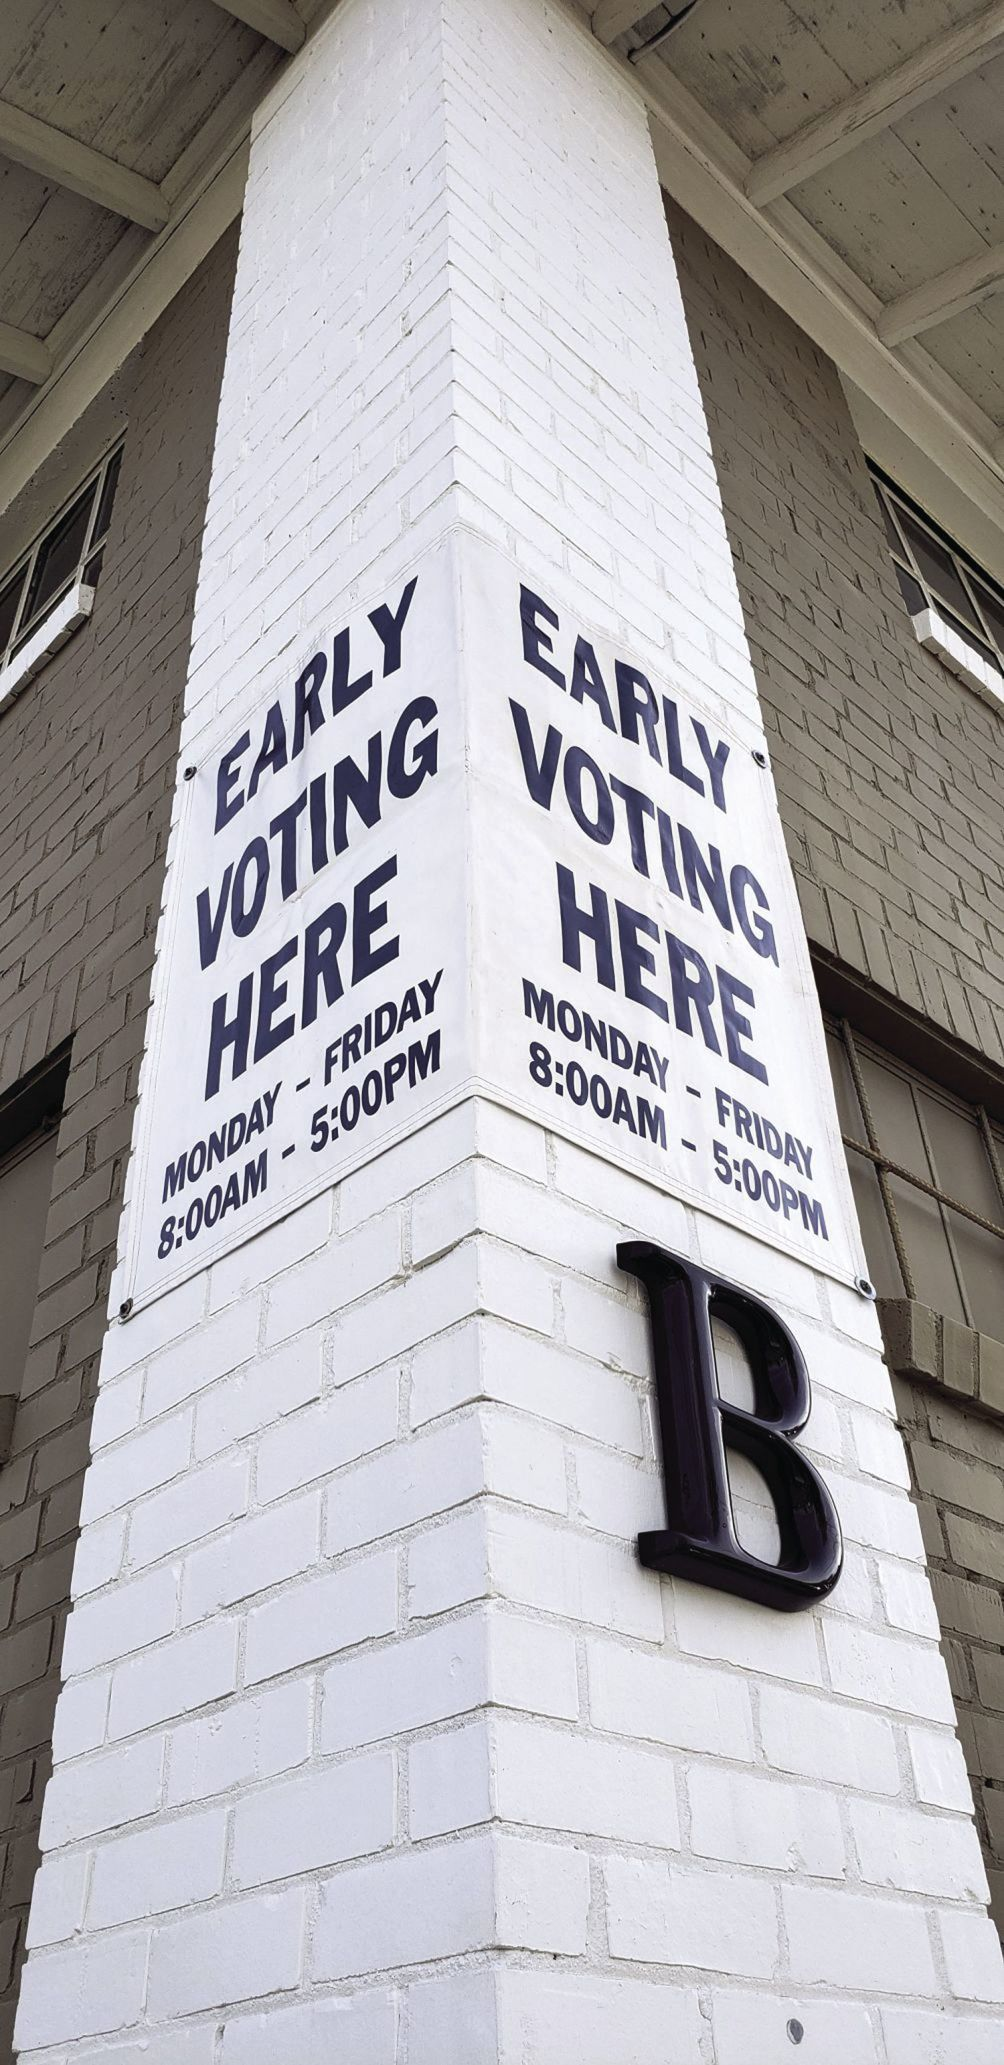 Tifton's polling place is located at the elections office, located at 222B Chesnutt Ave. All city voters will vote at that location between the hours of 7 a.m. and 7 p.m.